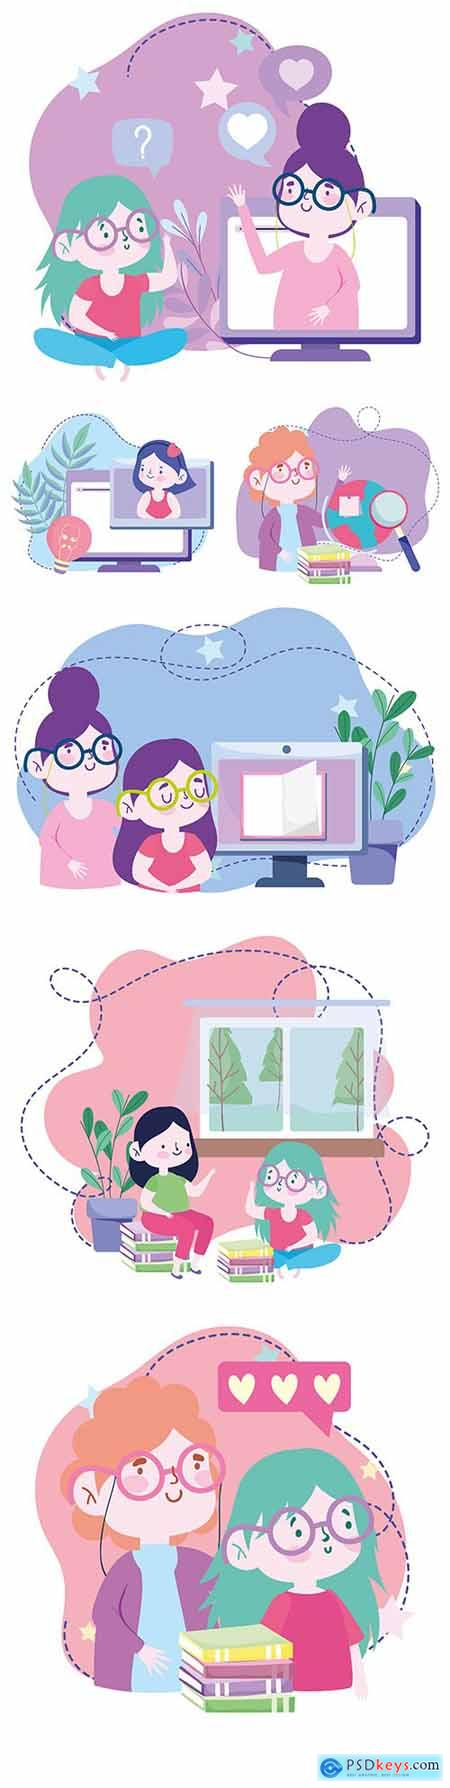 Online education and homework painted flat illustrations